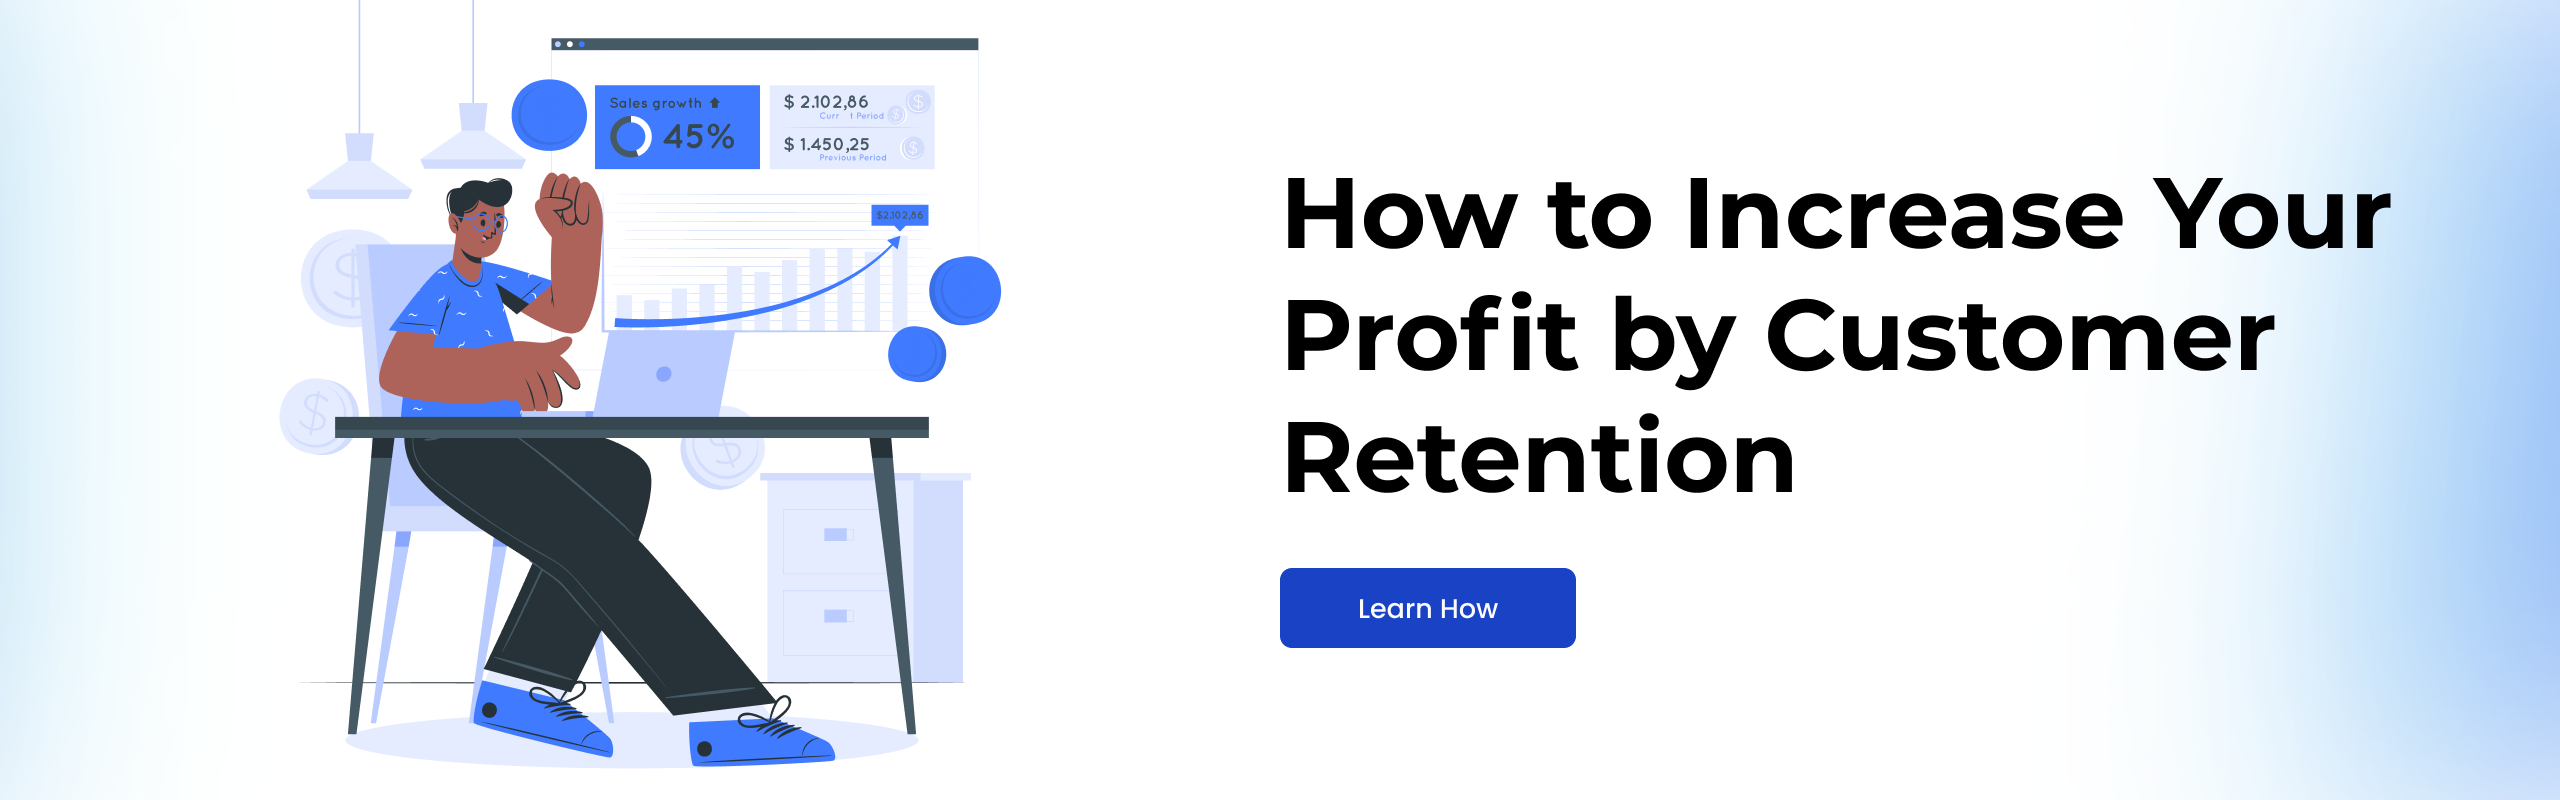 How to Increase Your Profit by Customer Retention